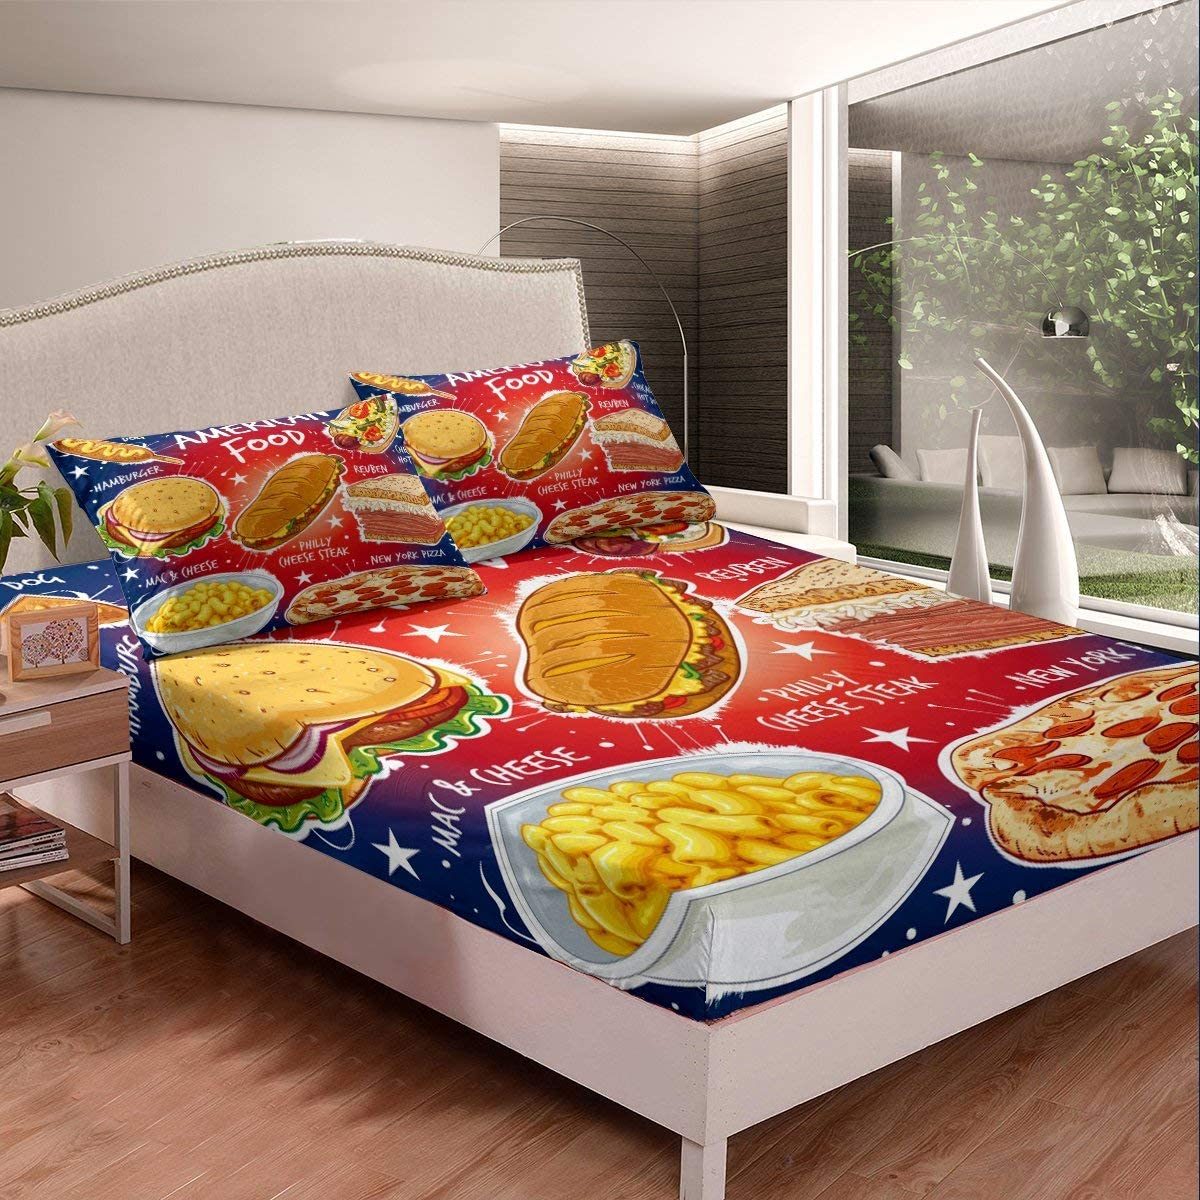 Erosebridal Children Fast Food Bedding Set Pizza Hamburger Sheet Set Twin Size for Kids Boys Girls Teens American Breakfast Fitted Sheet Sandwich Food Theme Bed Sheet Room Decoration